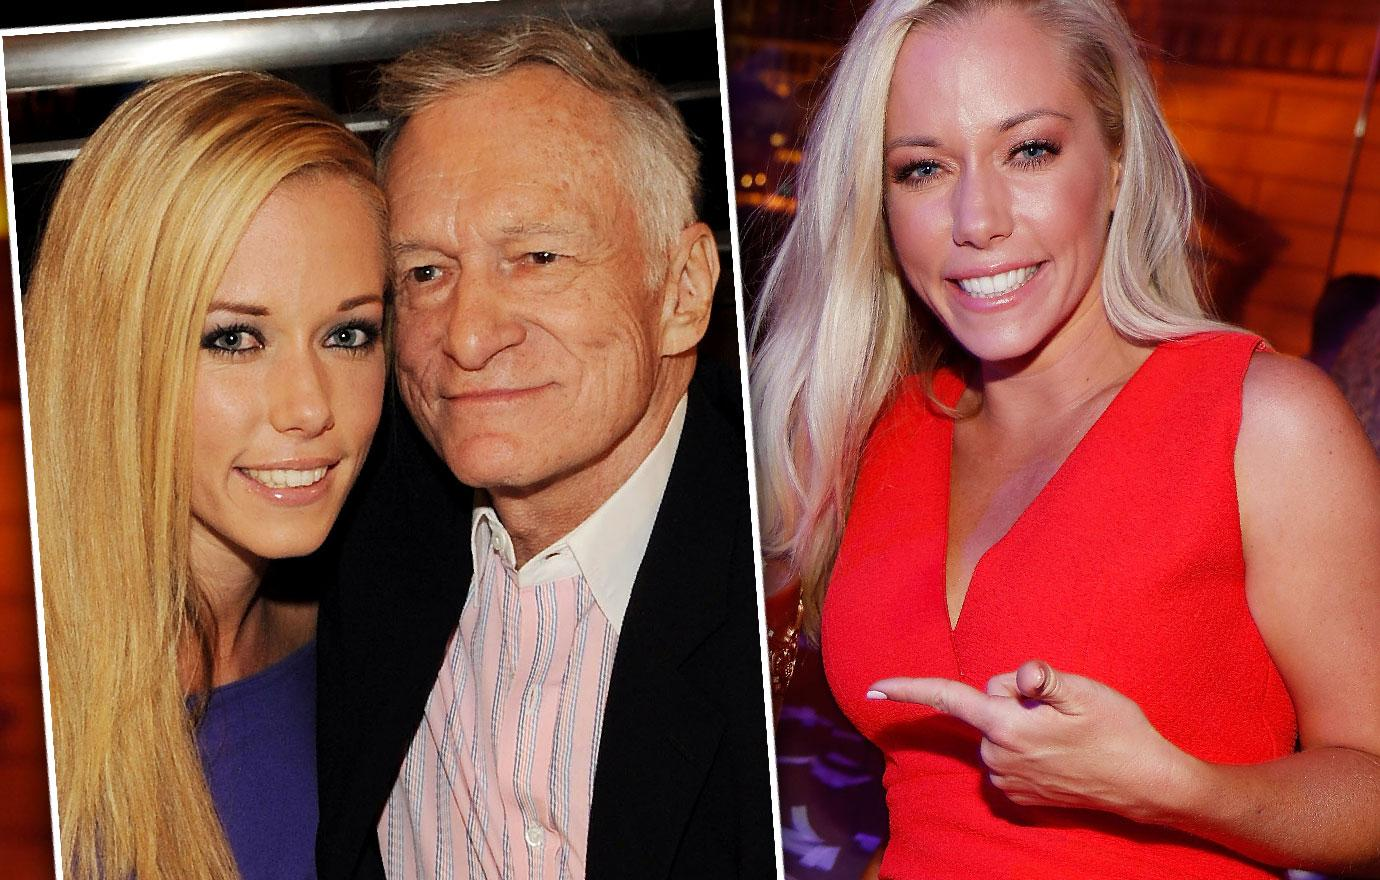 Kendra Wilkinson Says She's Celibate After Hank Divorce